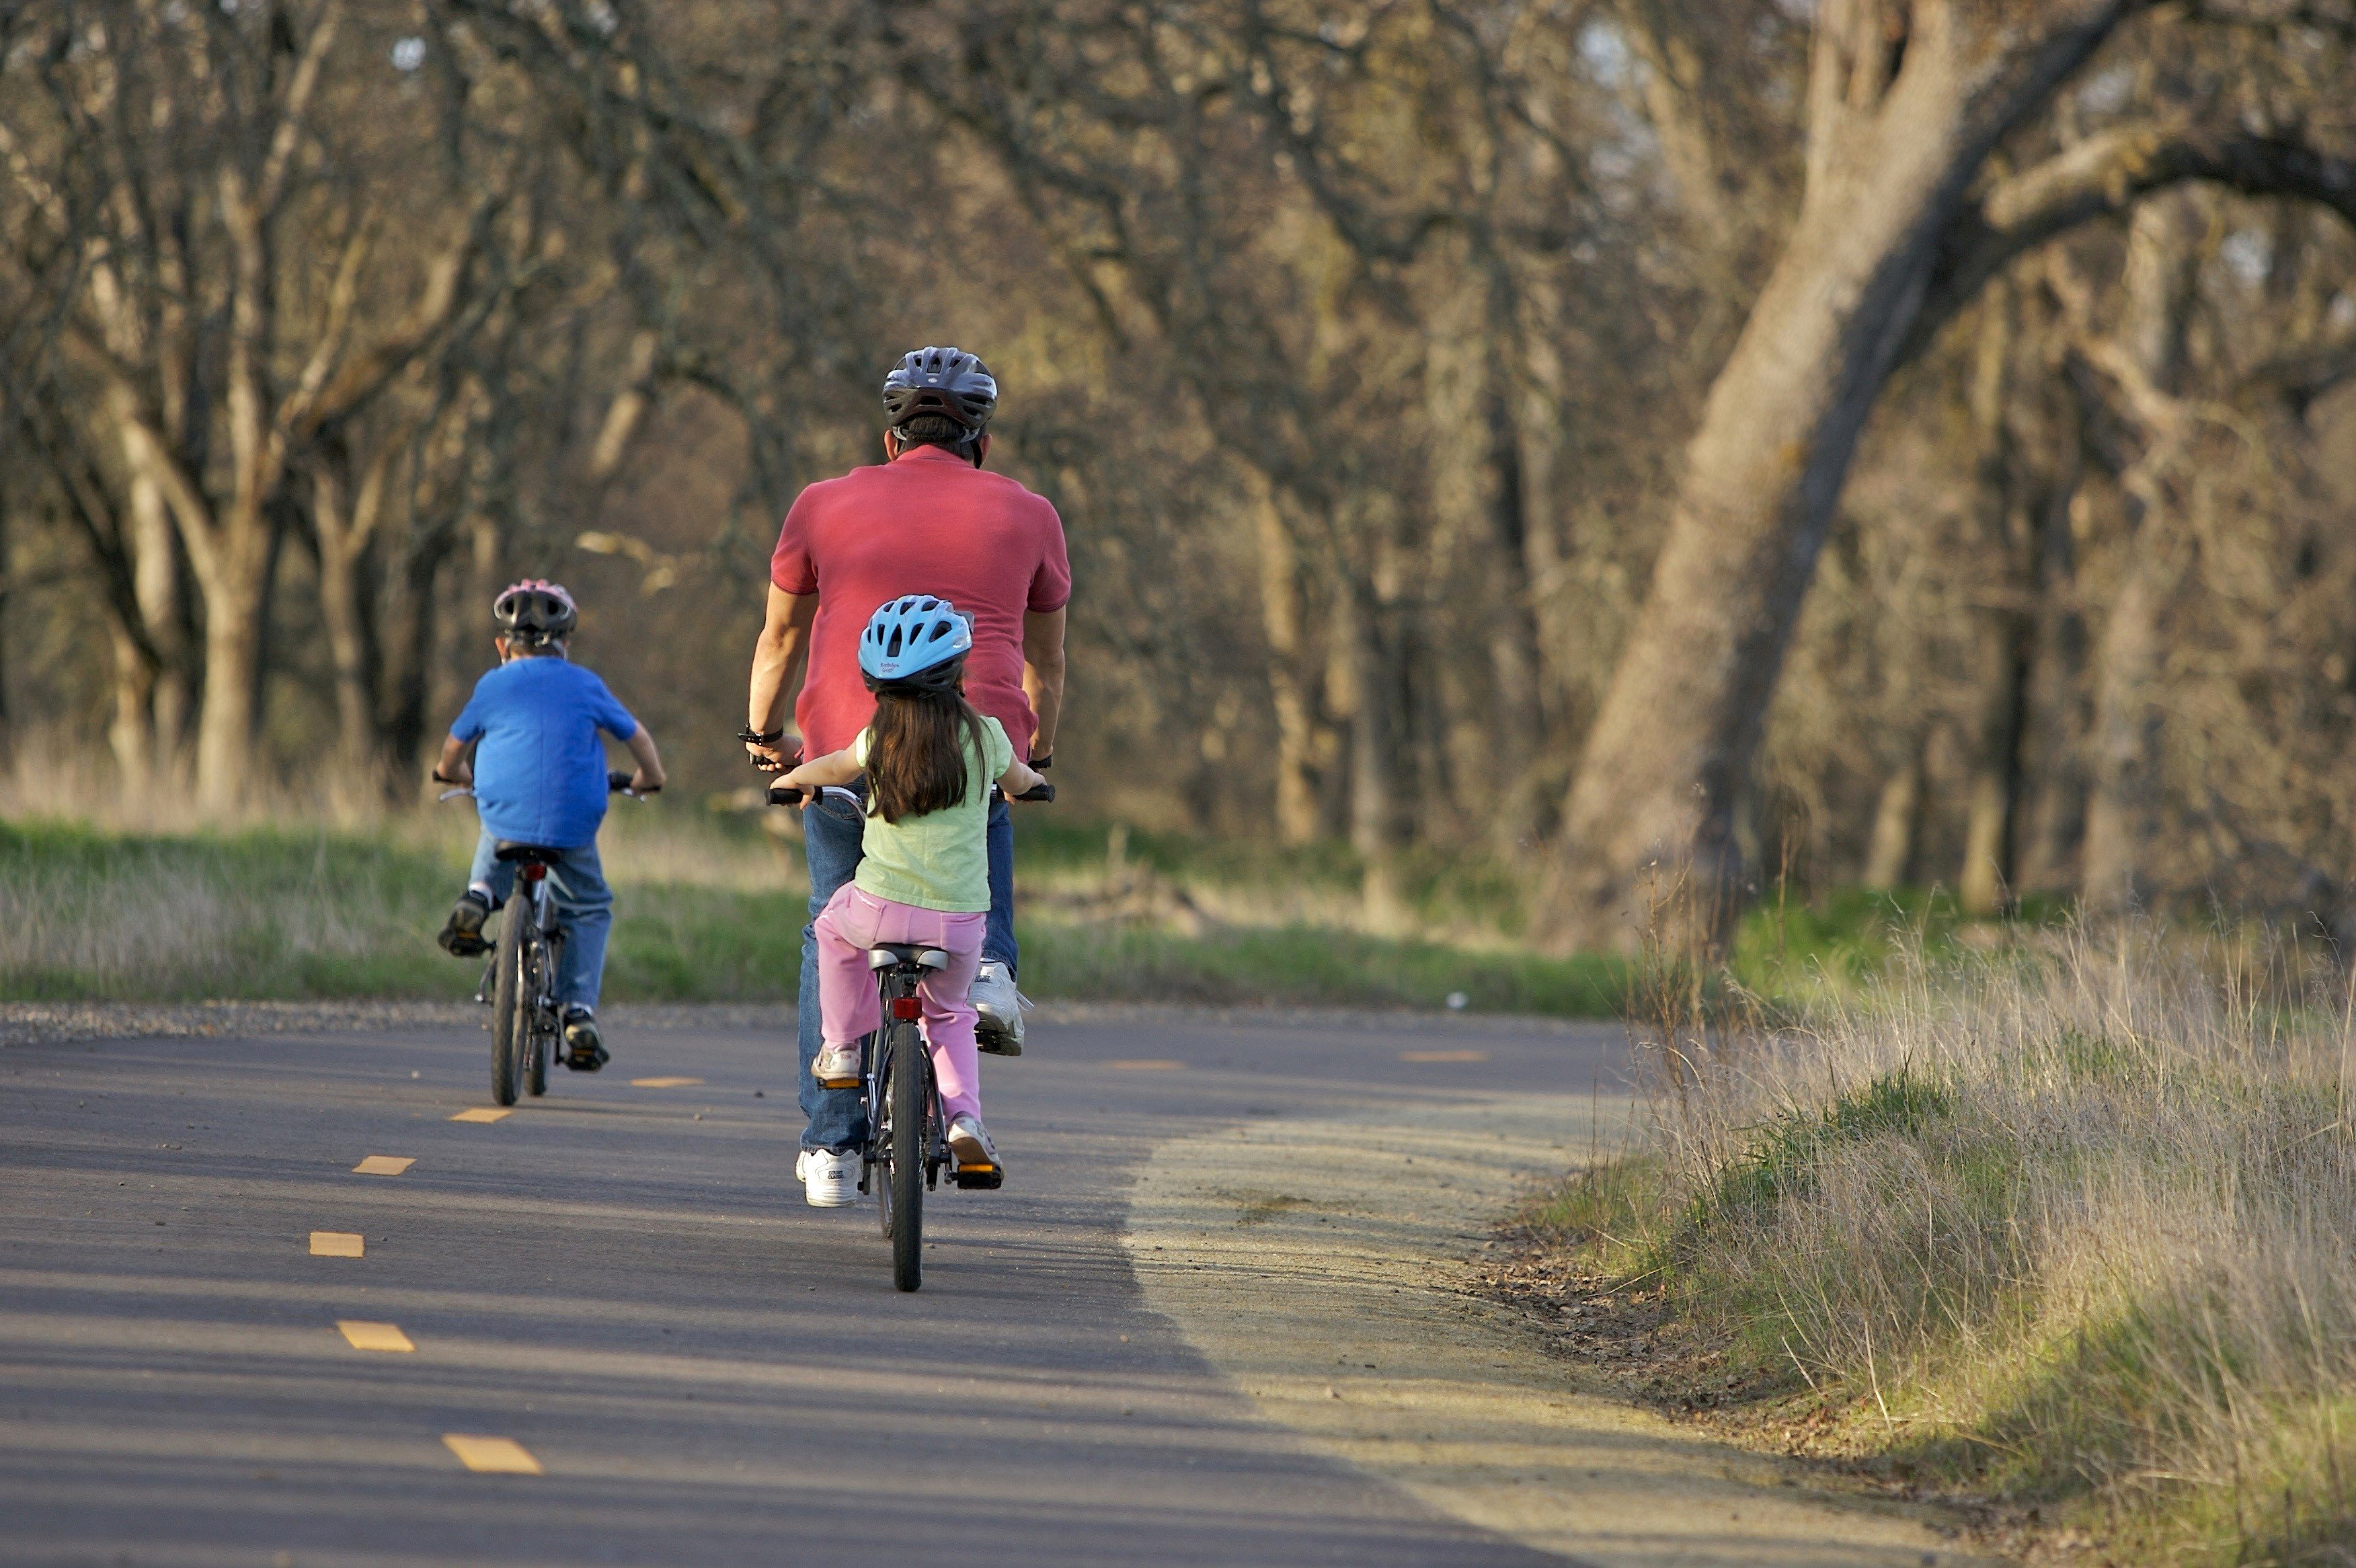 Good Things in Threes: Cycle 3 of California AT Program Means $84 million for Trails